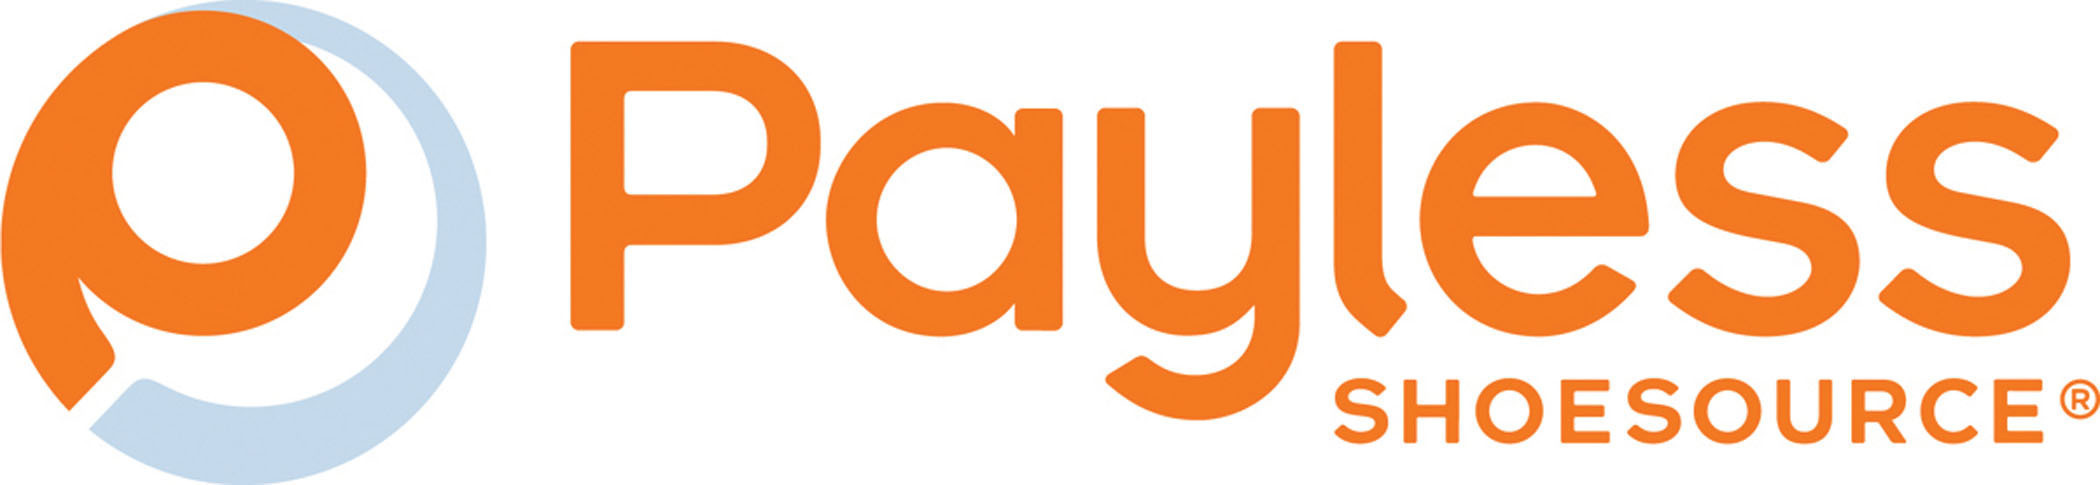 Black Friday 2018: Payless Shoesource Ad Scan